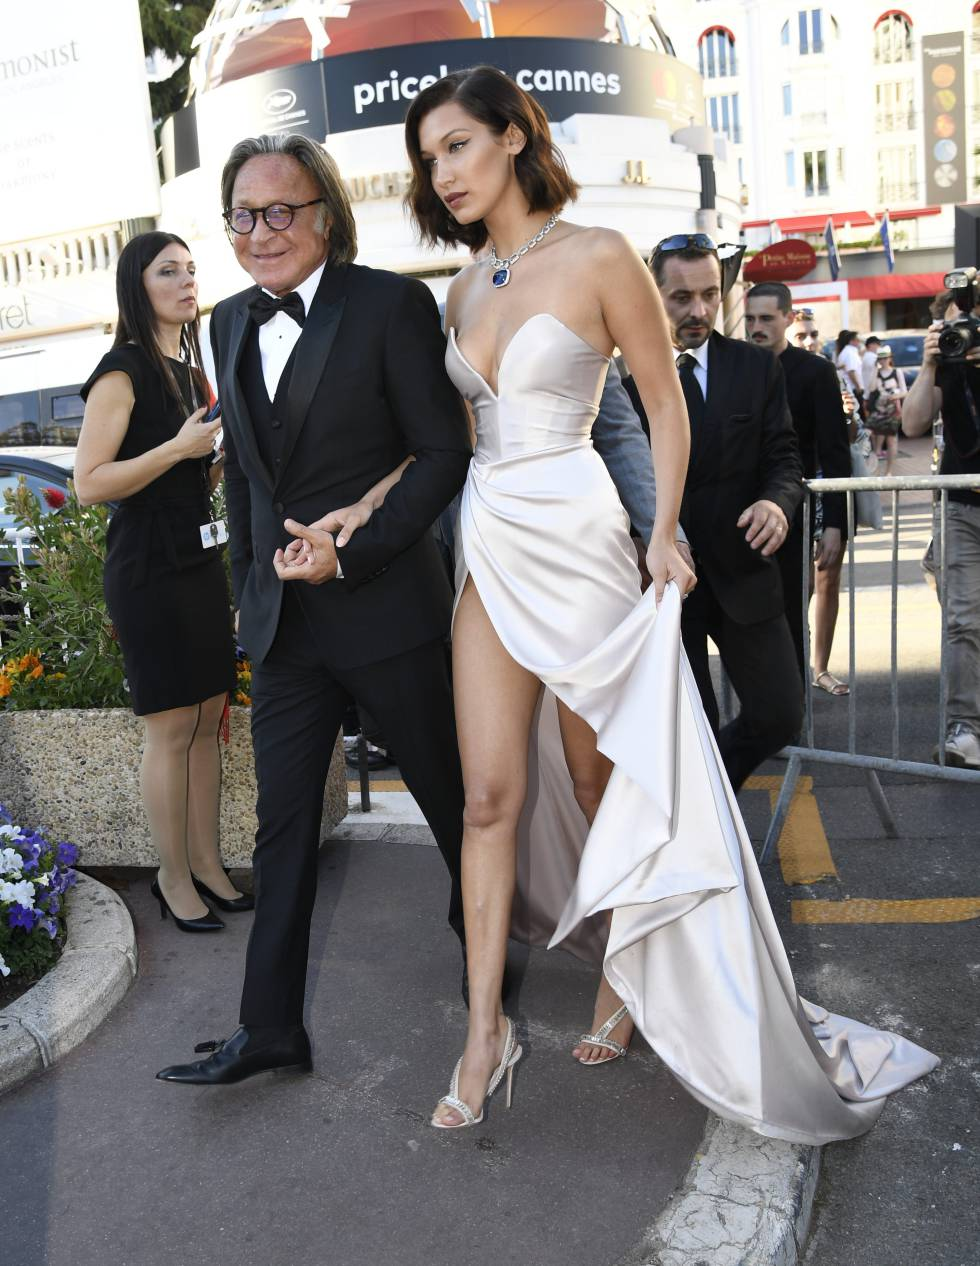 Mohamed and Bella Hadid at Cannes in 2017.